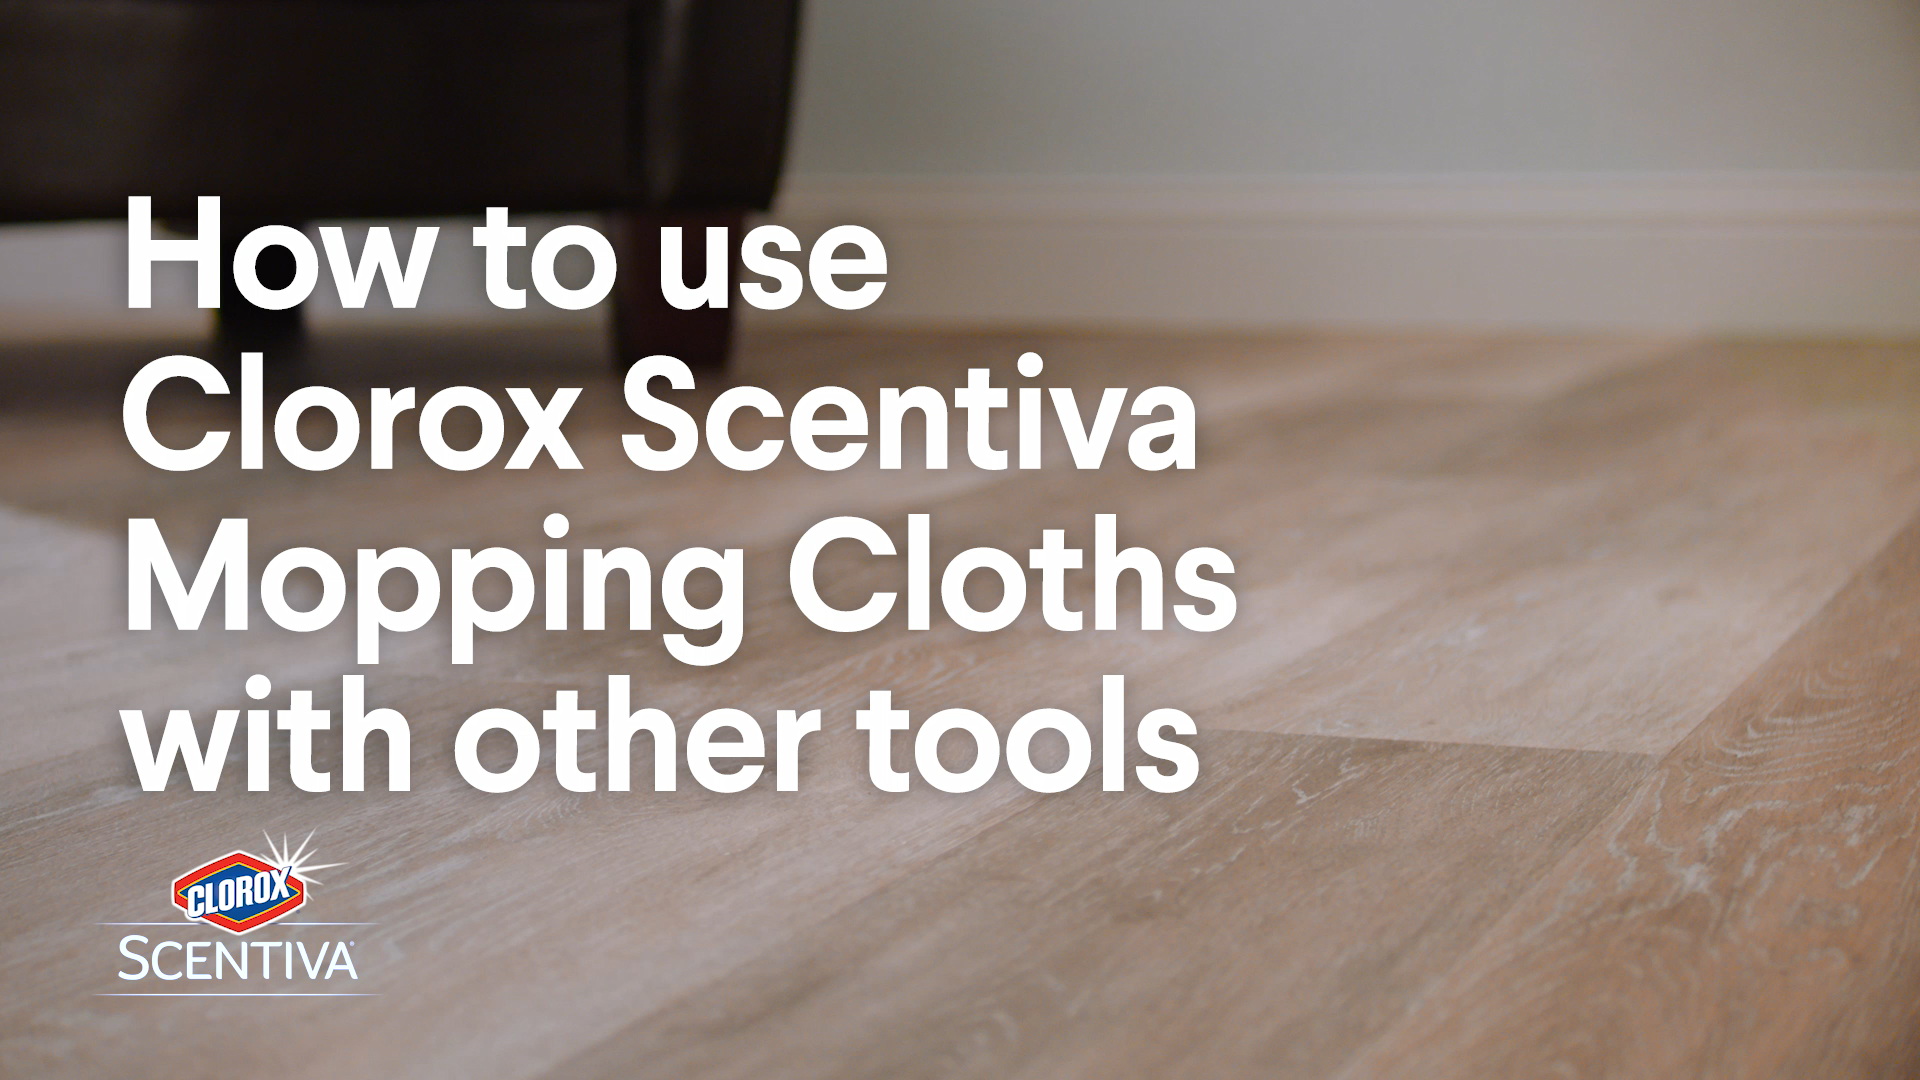 How to Use Clorox Scentiva Mopping Cloths with Oth